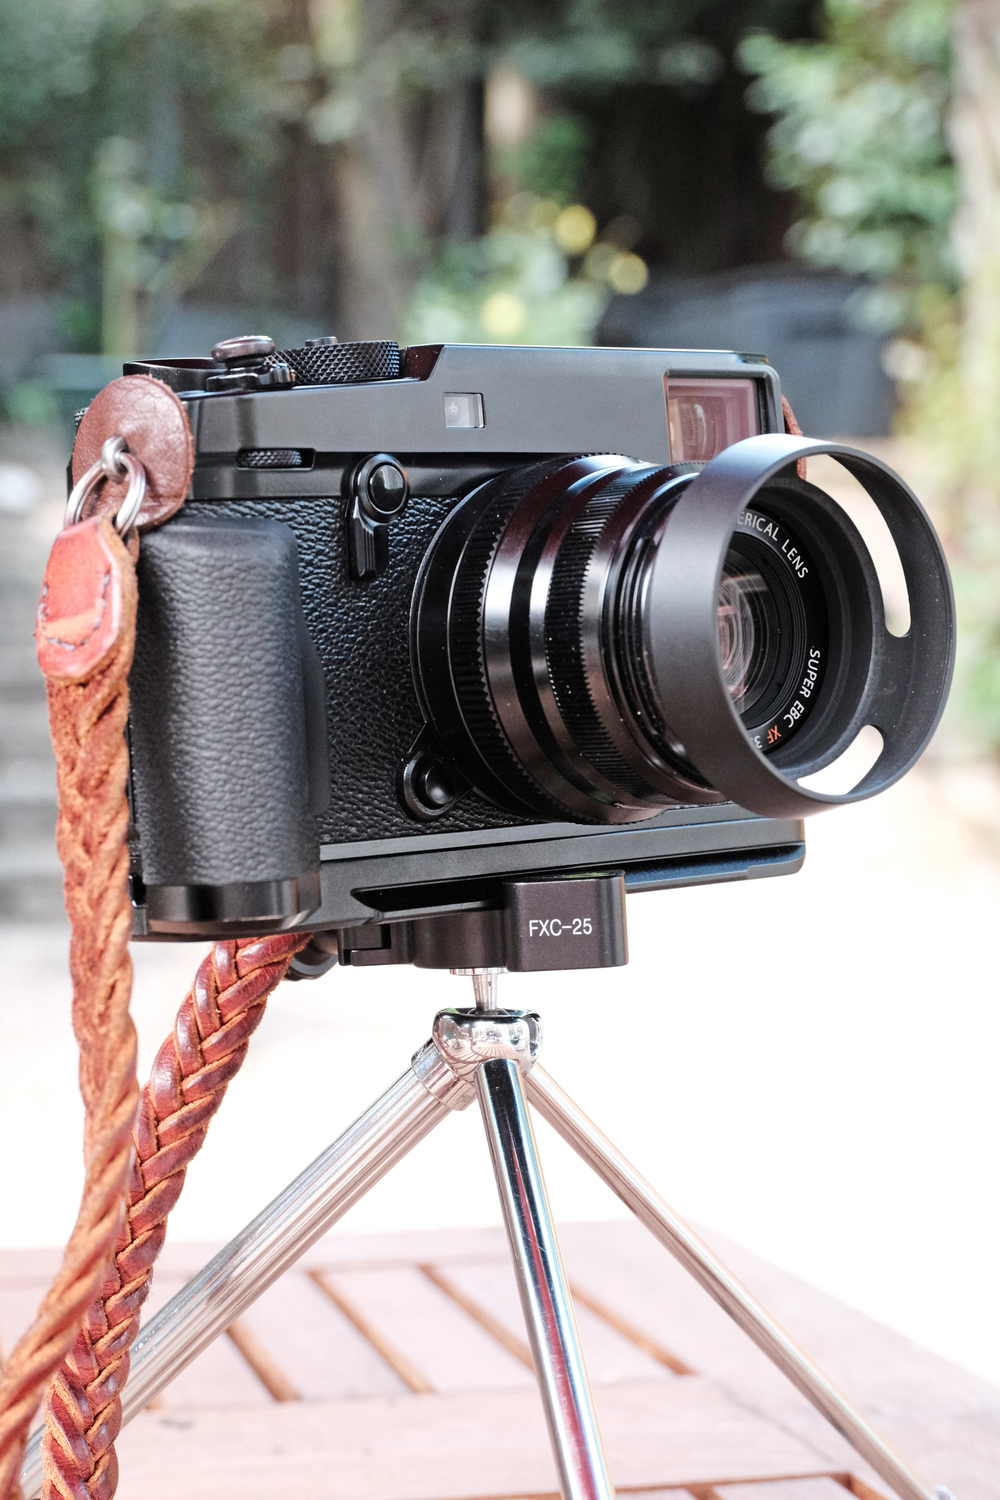 Form And Function Perfectly Combined: Minox Tabletop Tripod: Form And Function Combined In A